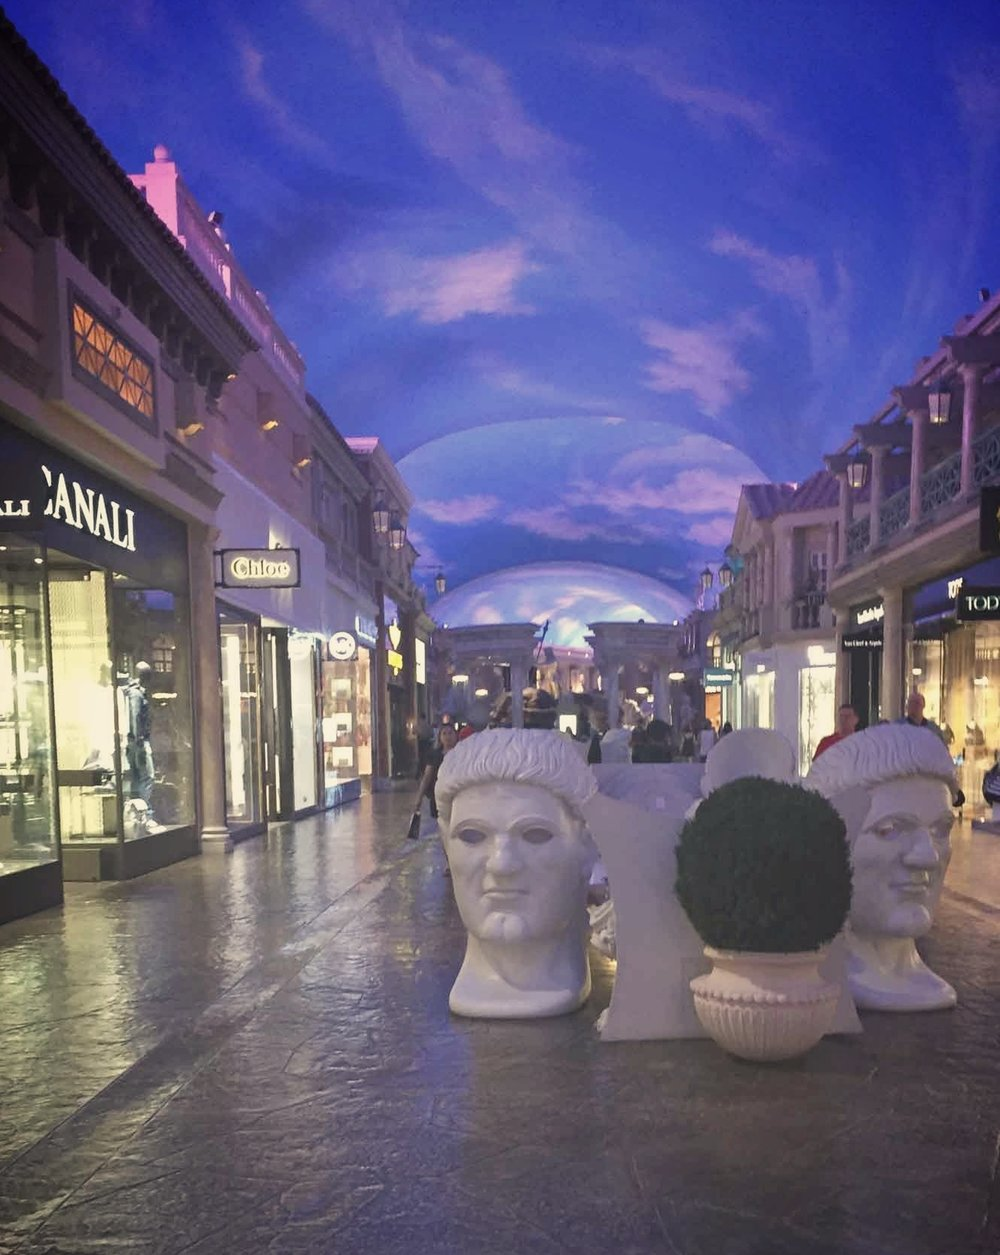 The Forum Shops at Caesar's